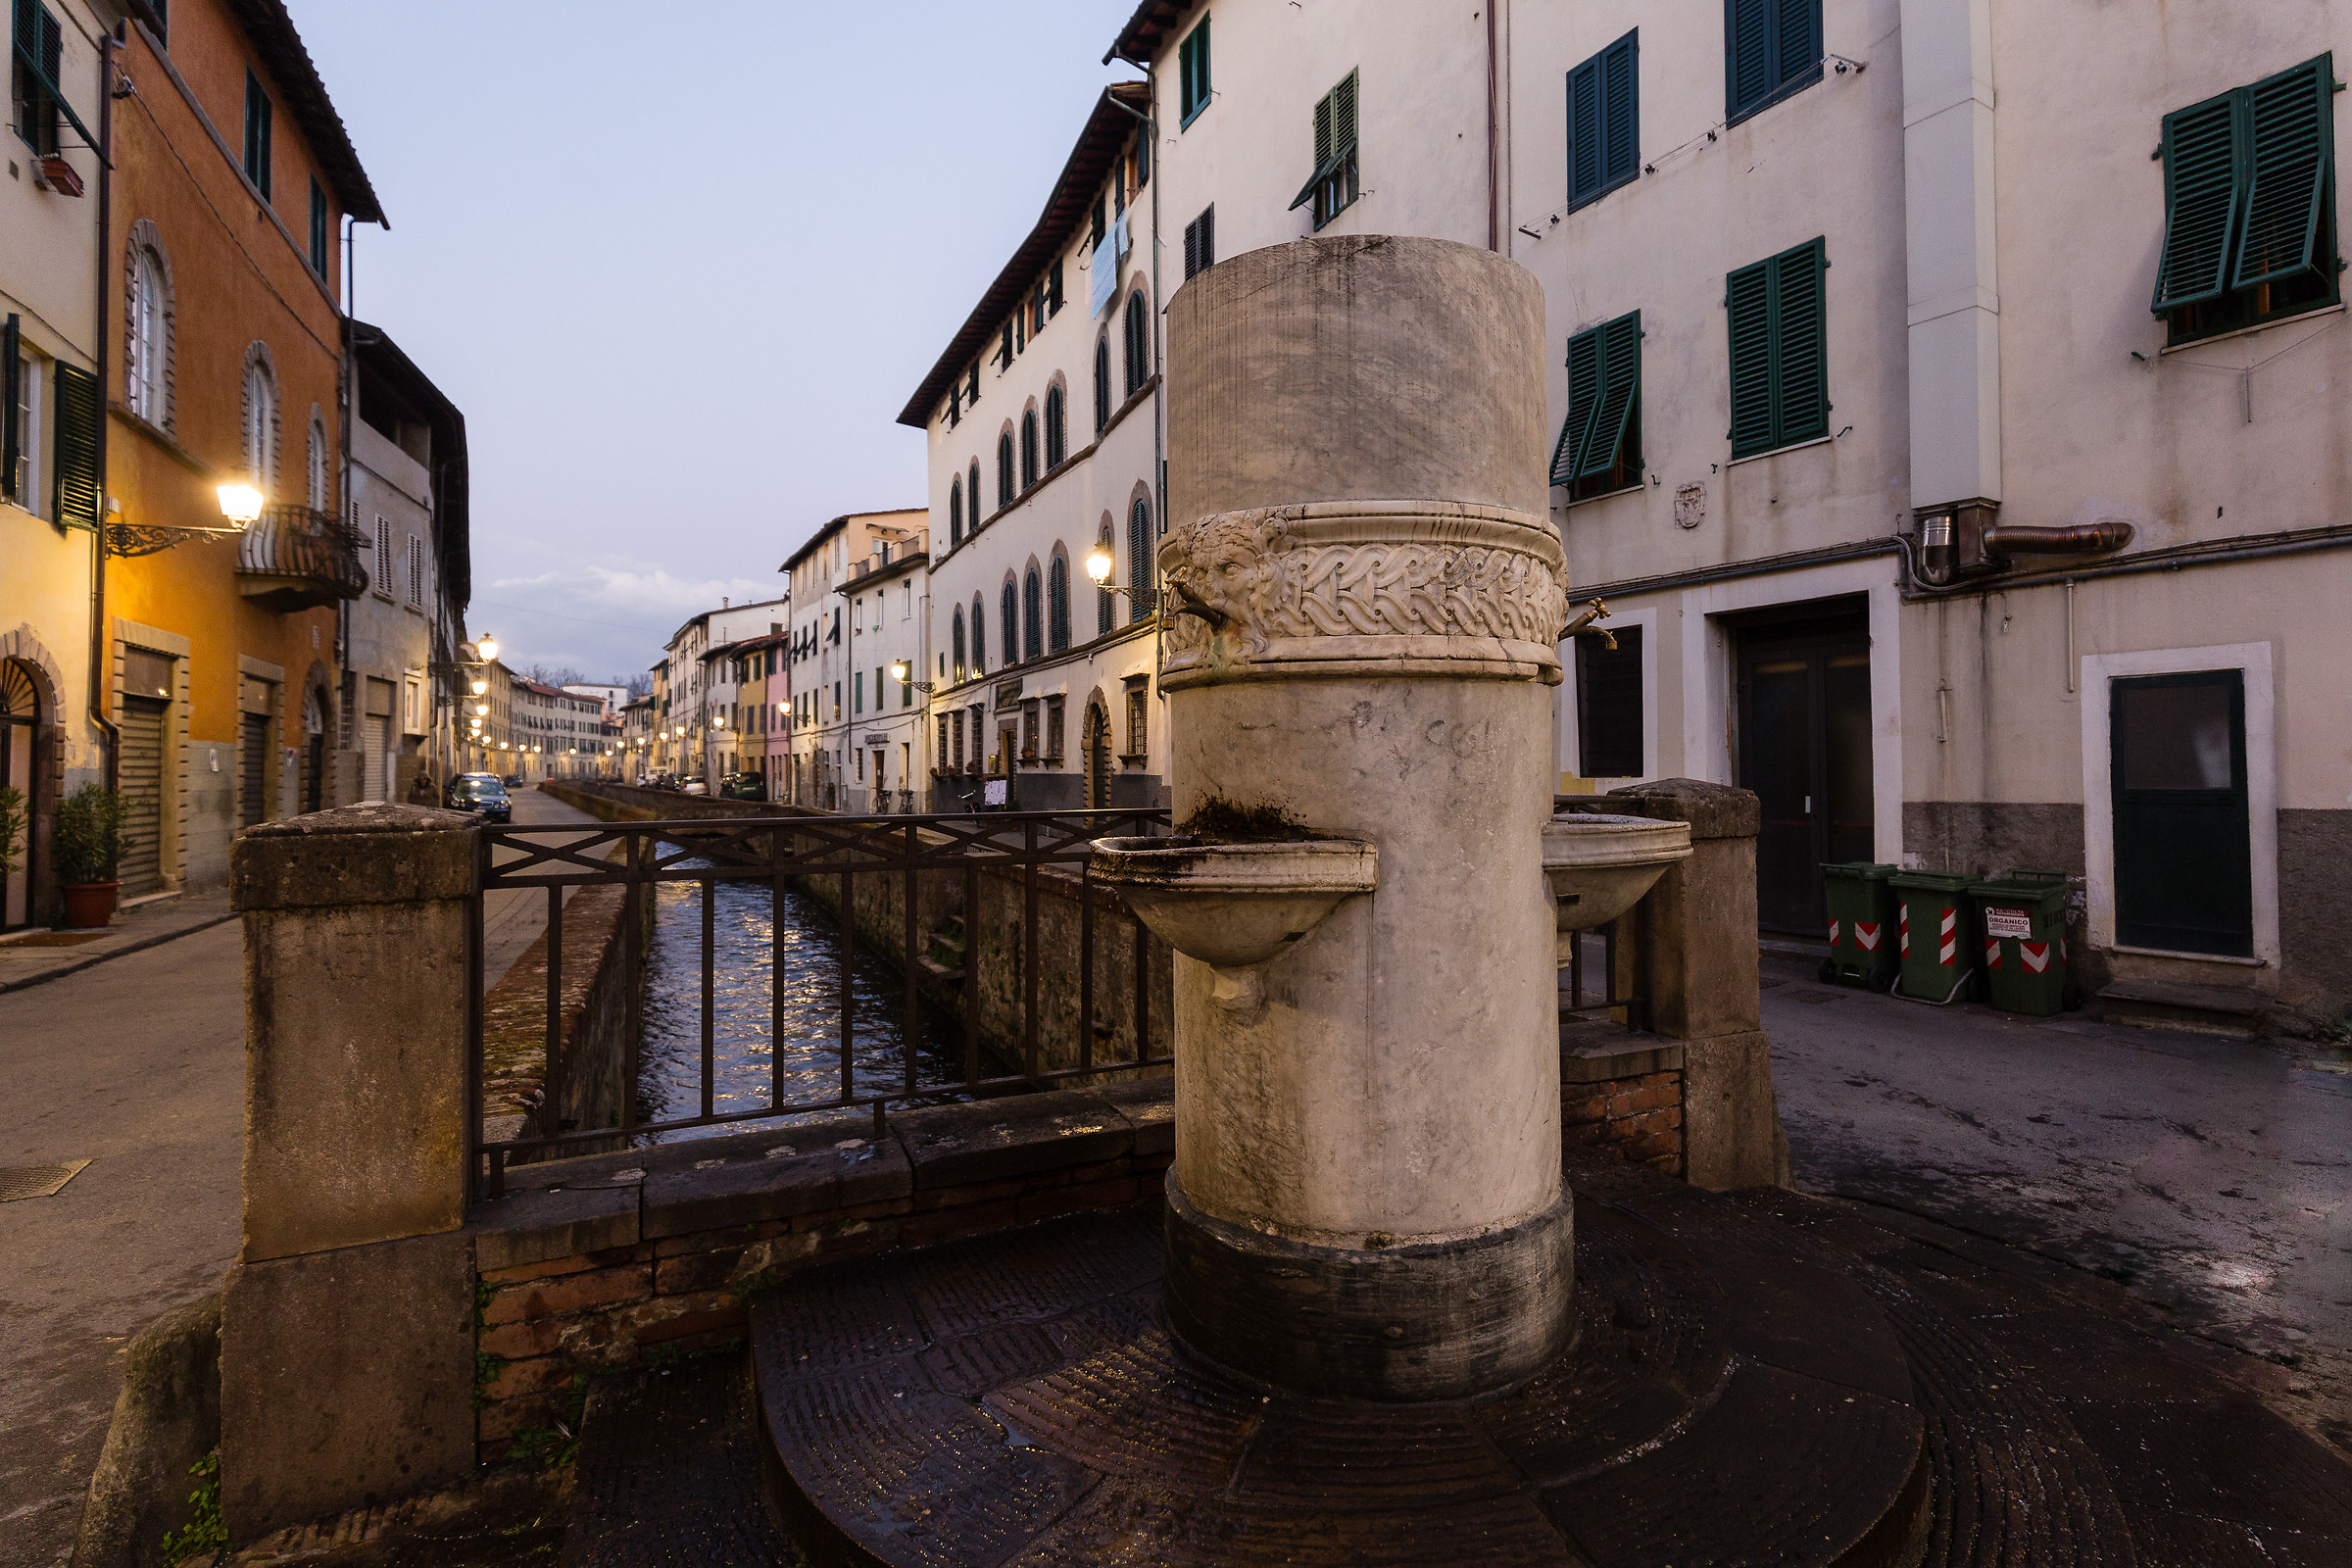 Lucca and its canal...